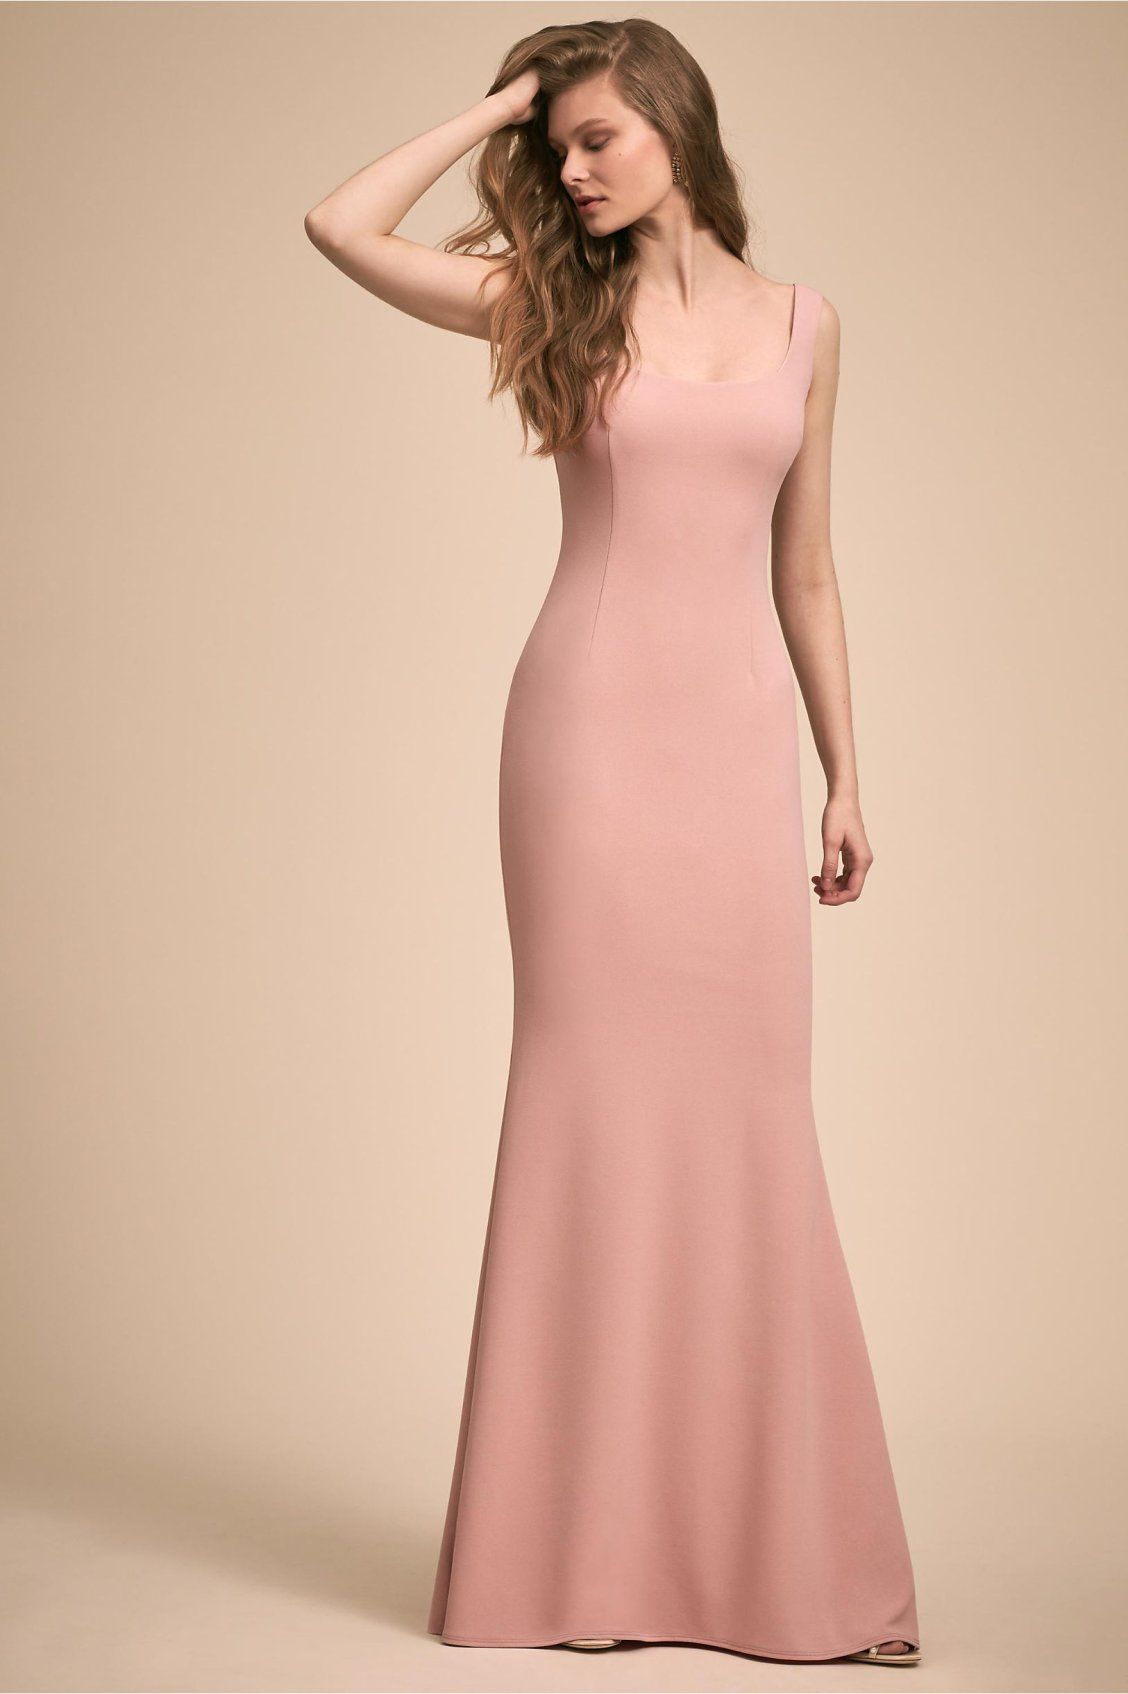 Lucy Dress from BHLDN | Vestidos❤ | Pinterest | Estilo y Vestiditos